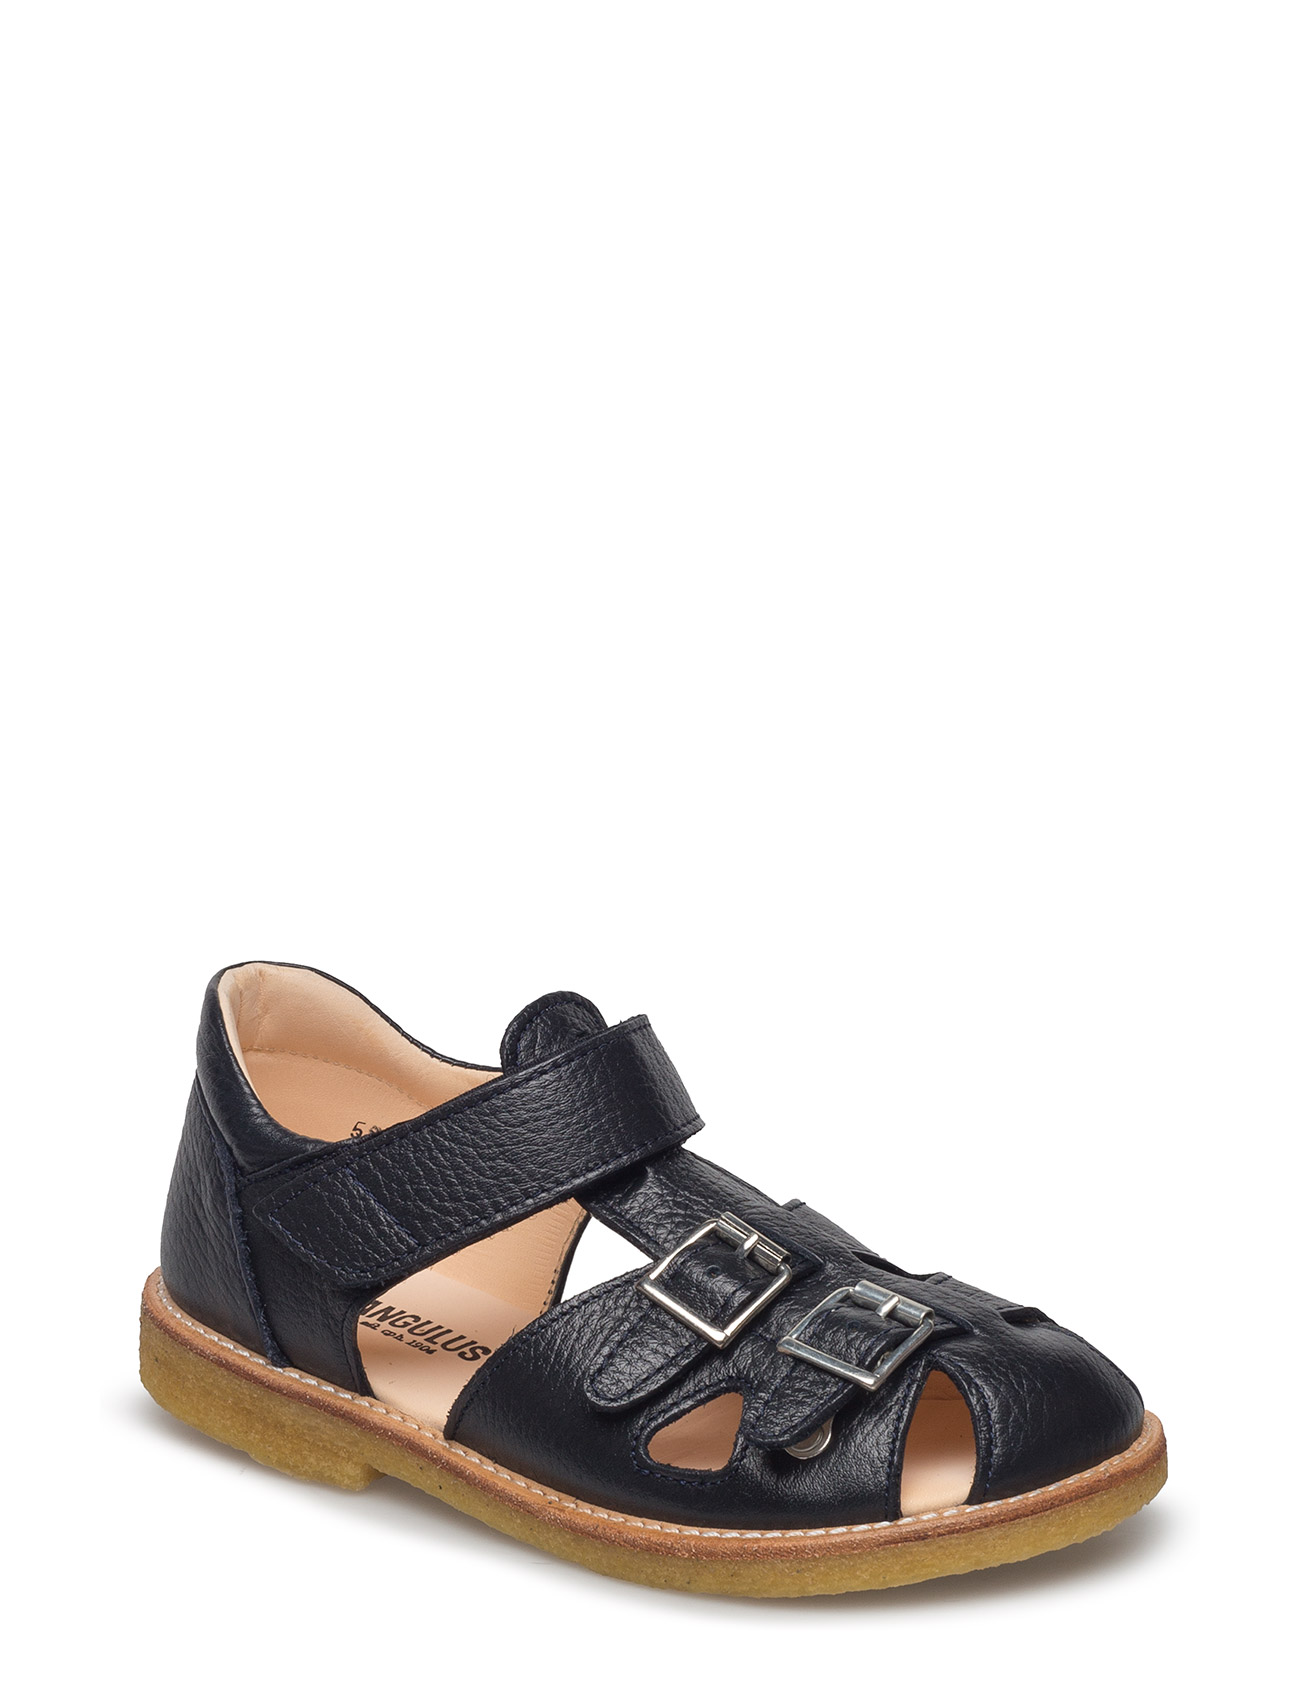 ANGULUS Sandal with two buckles in front - 1989 NAVY